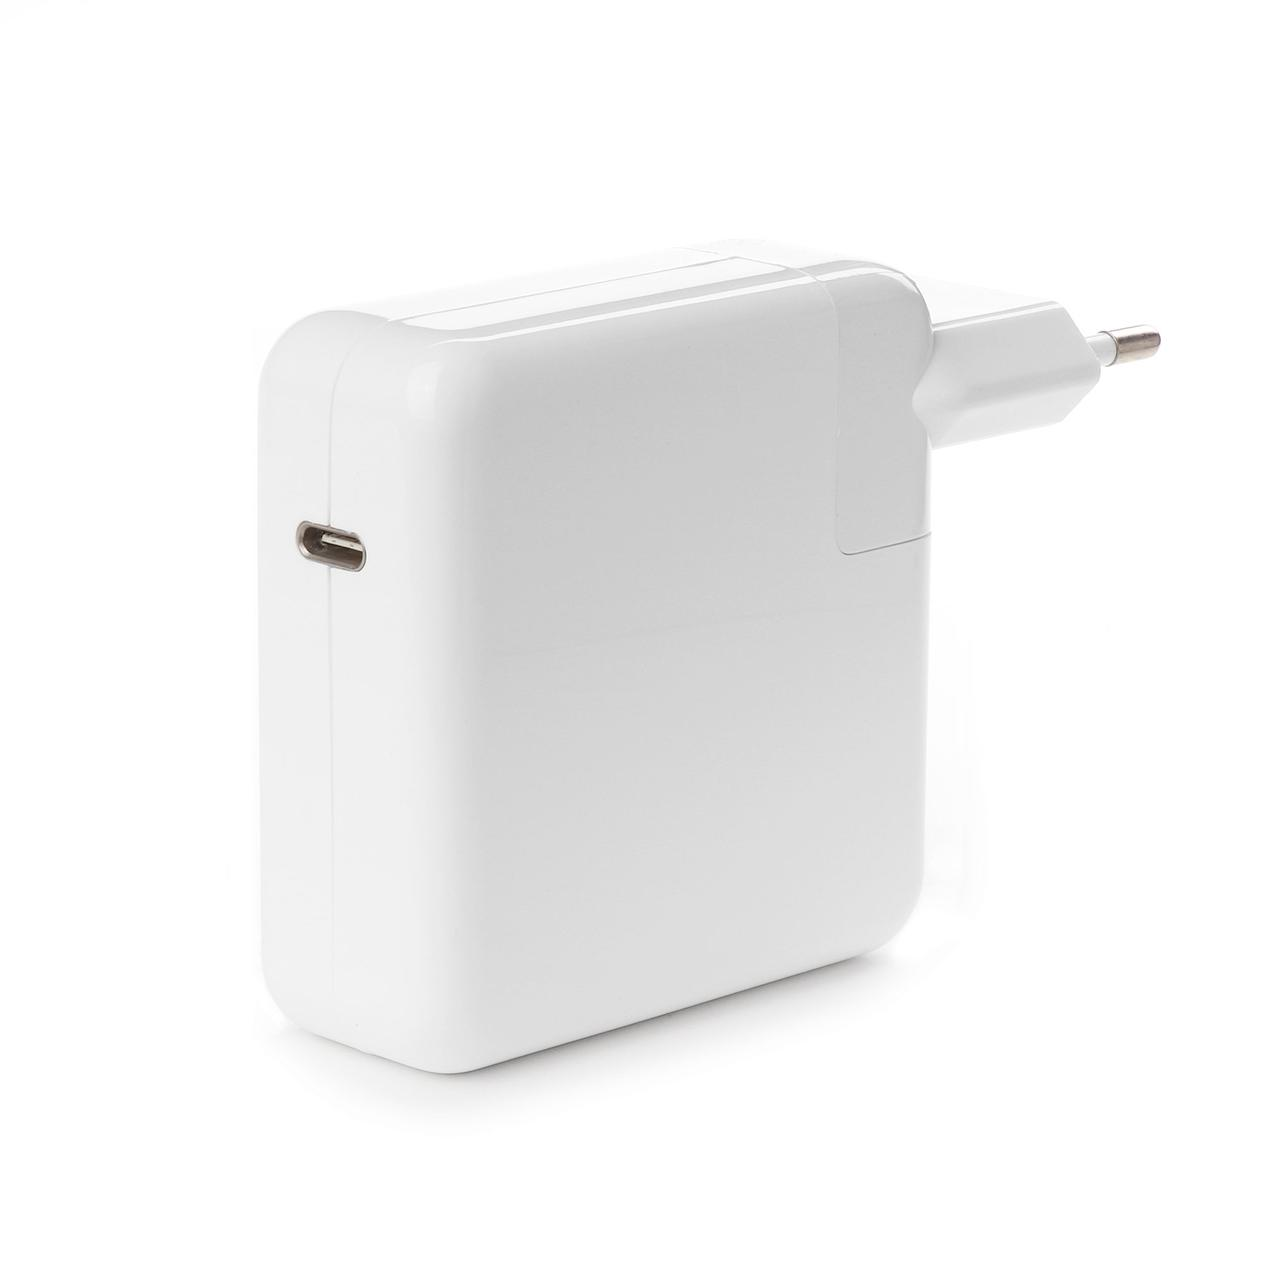 Блок питания USB-C 87W, Power Delivery 3.0, Quick Charge 3.0, Белый